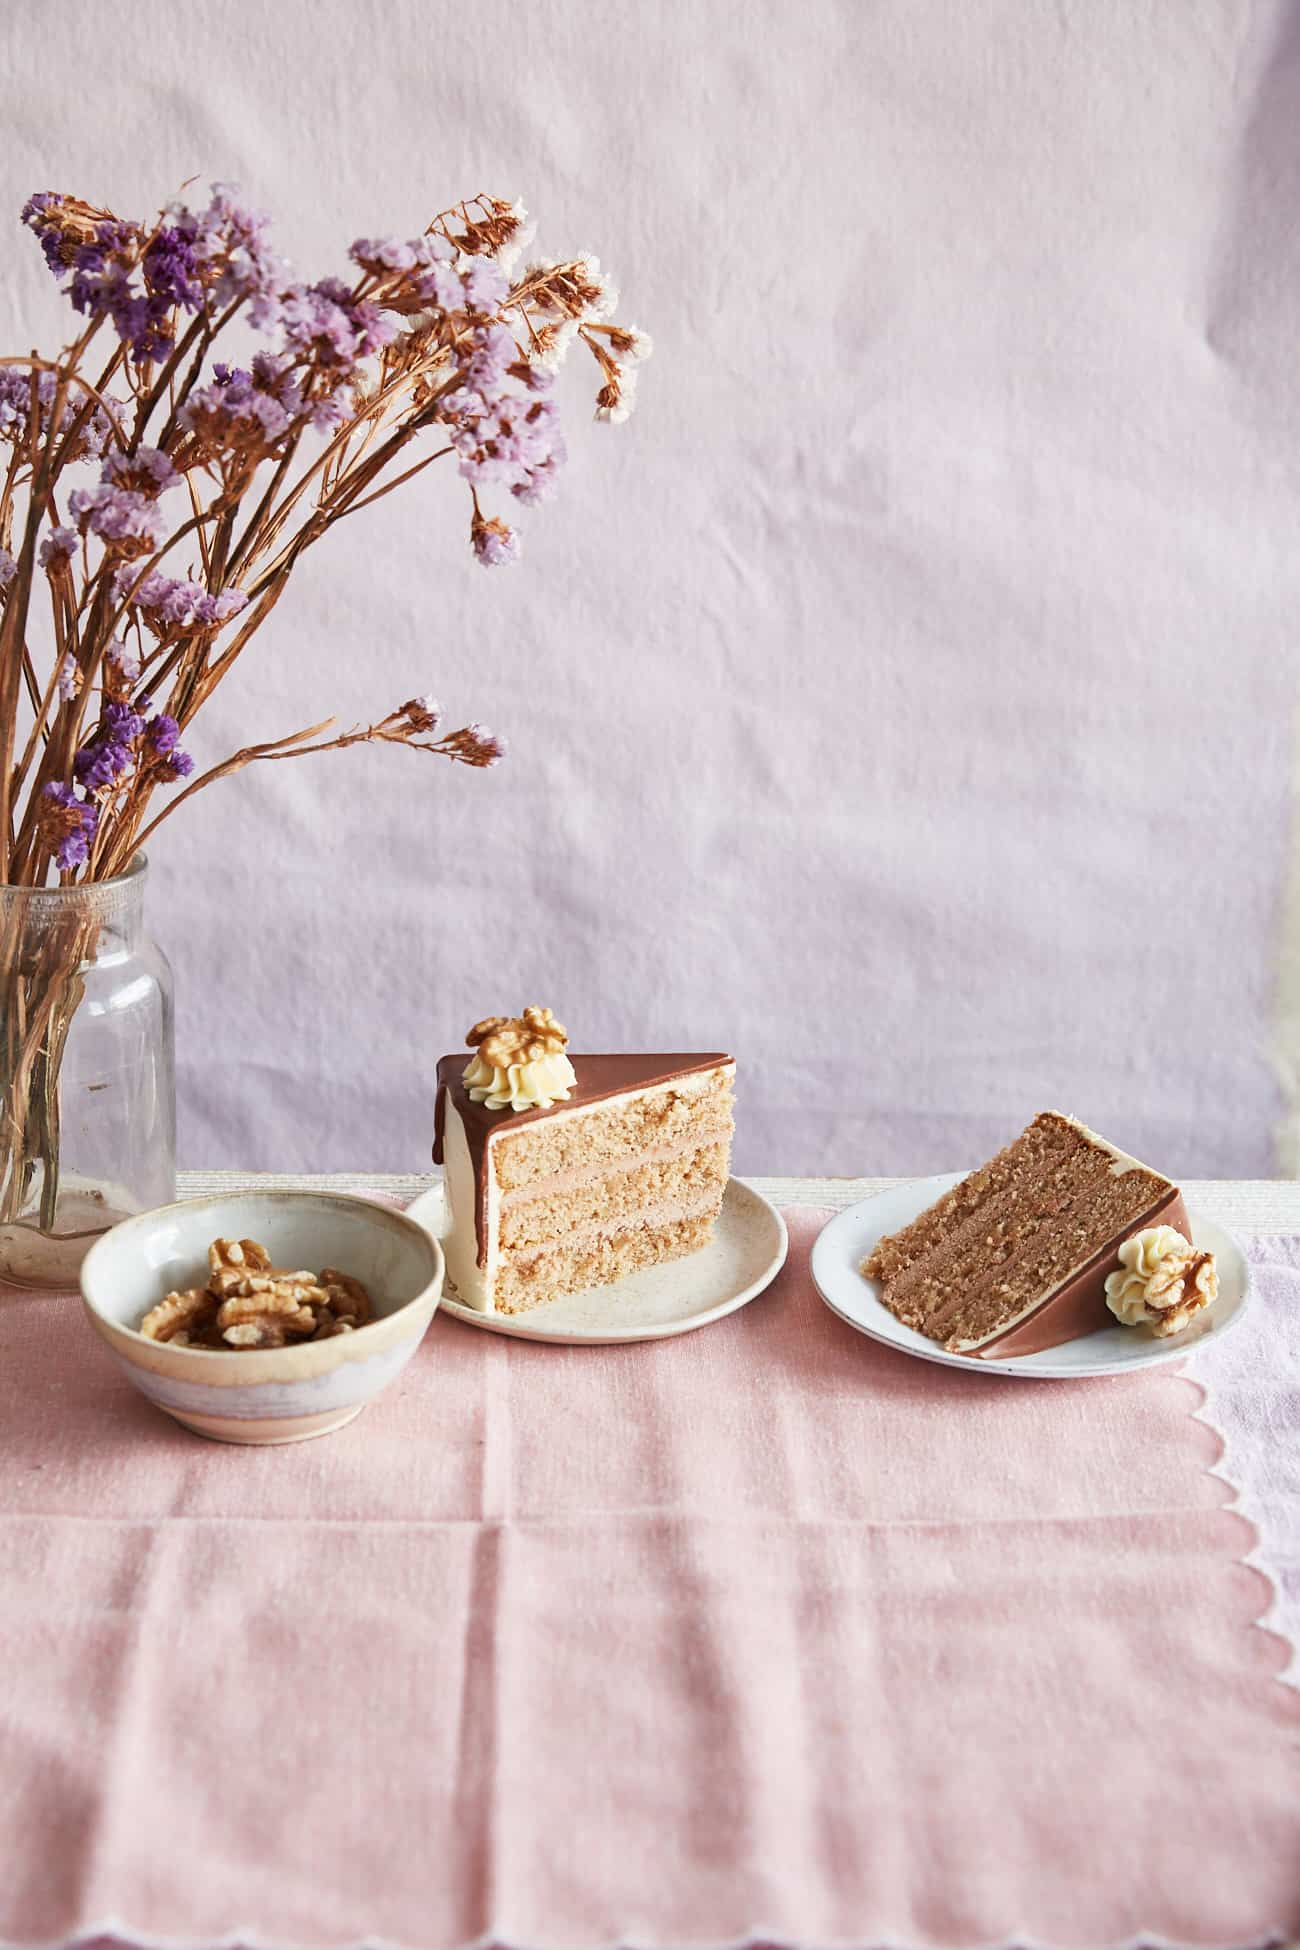 2 slices of walnut whip cake on pink cloth